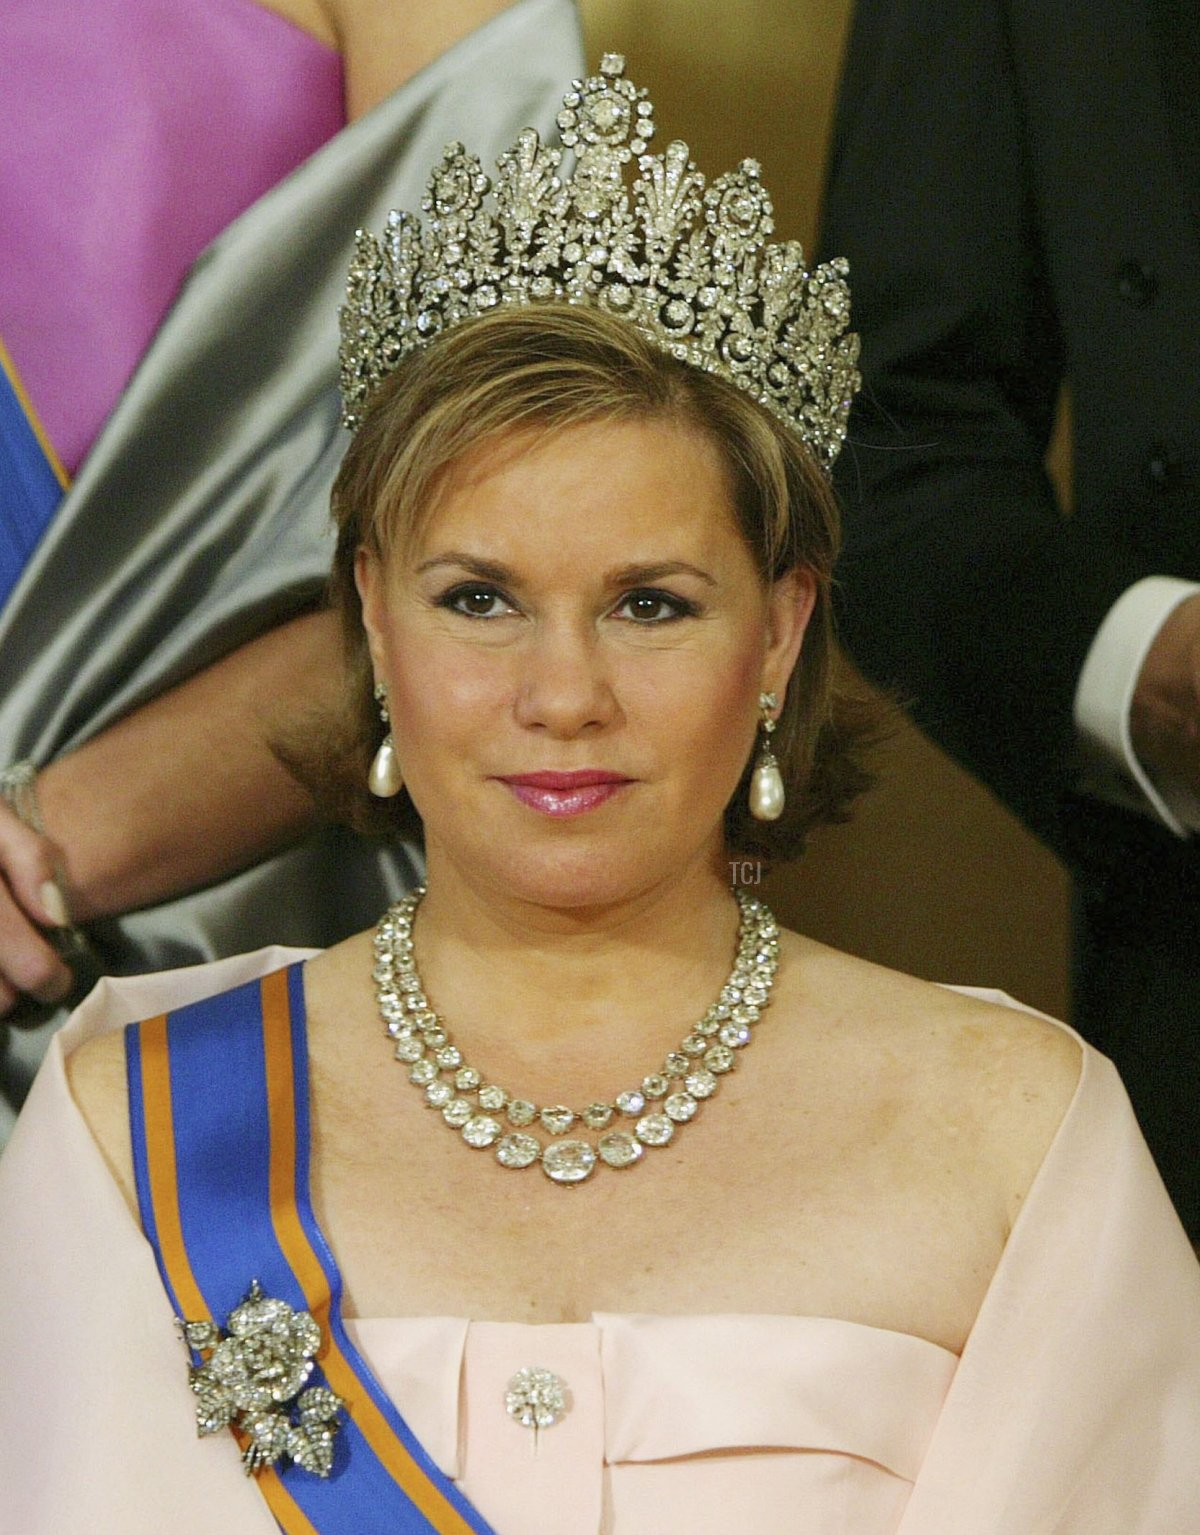 The Grand Duchess Maria Teresa of Luxemburg poses for a group photo at the Noordeinde Palace in The Hague, the Netherlands April 24, 2006. Grand Duke Henri and his wife Maria Teresa are here on a three-day visit the the Netherlands